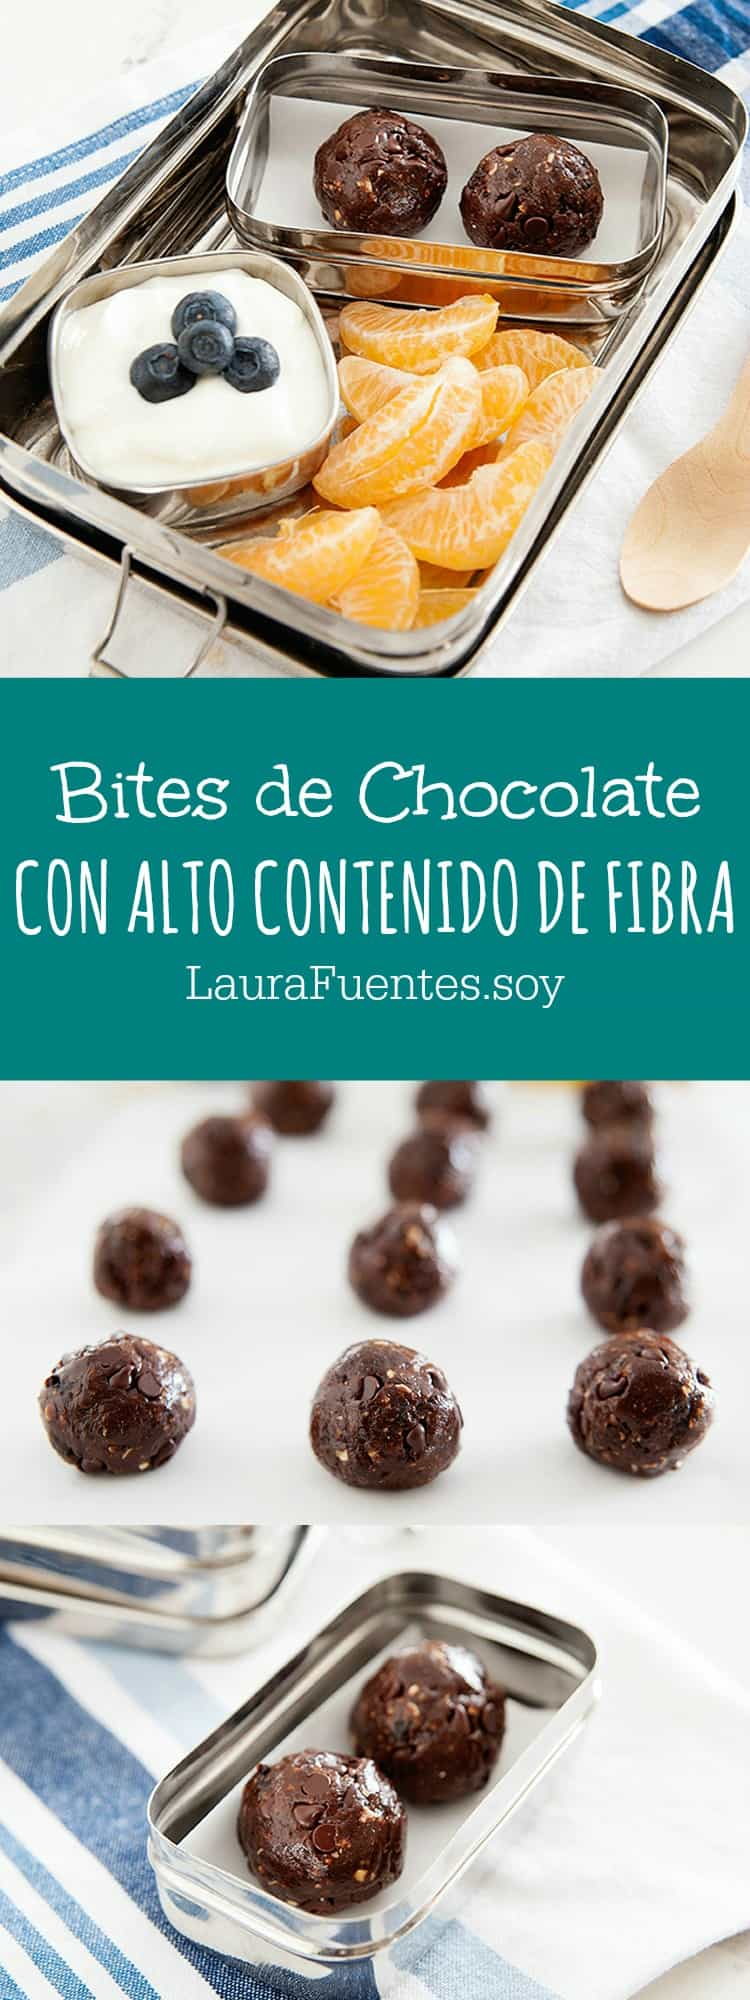 high_fiber_chocolate_bites_Vertical_spanish